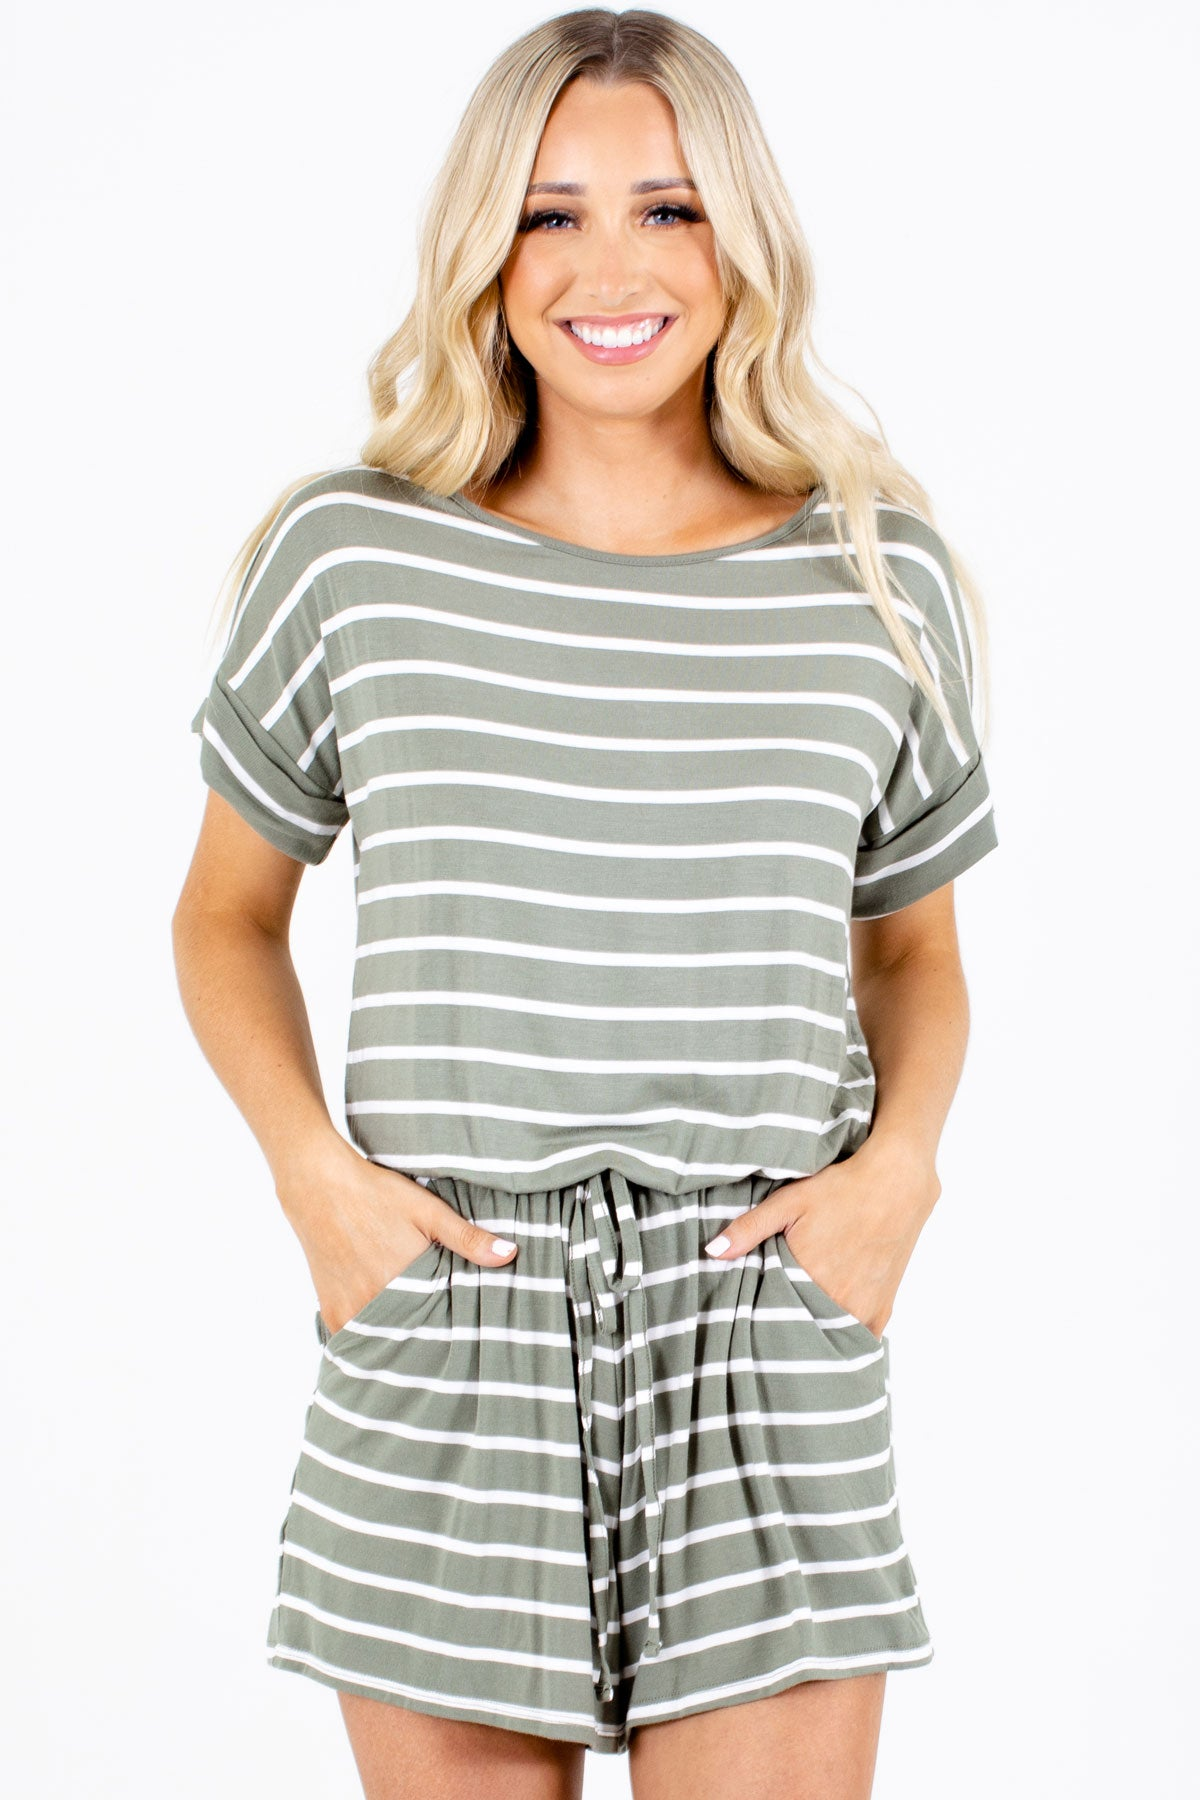 Green Striped Pattern Boutique Rompers for Women